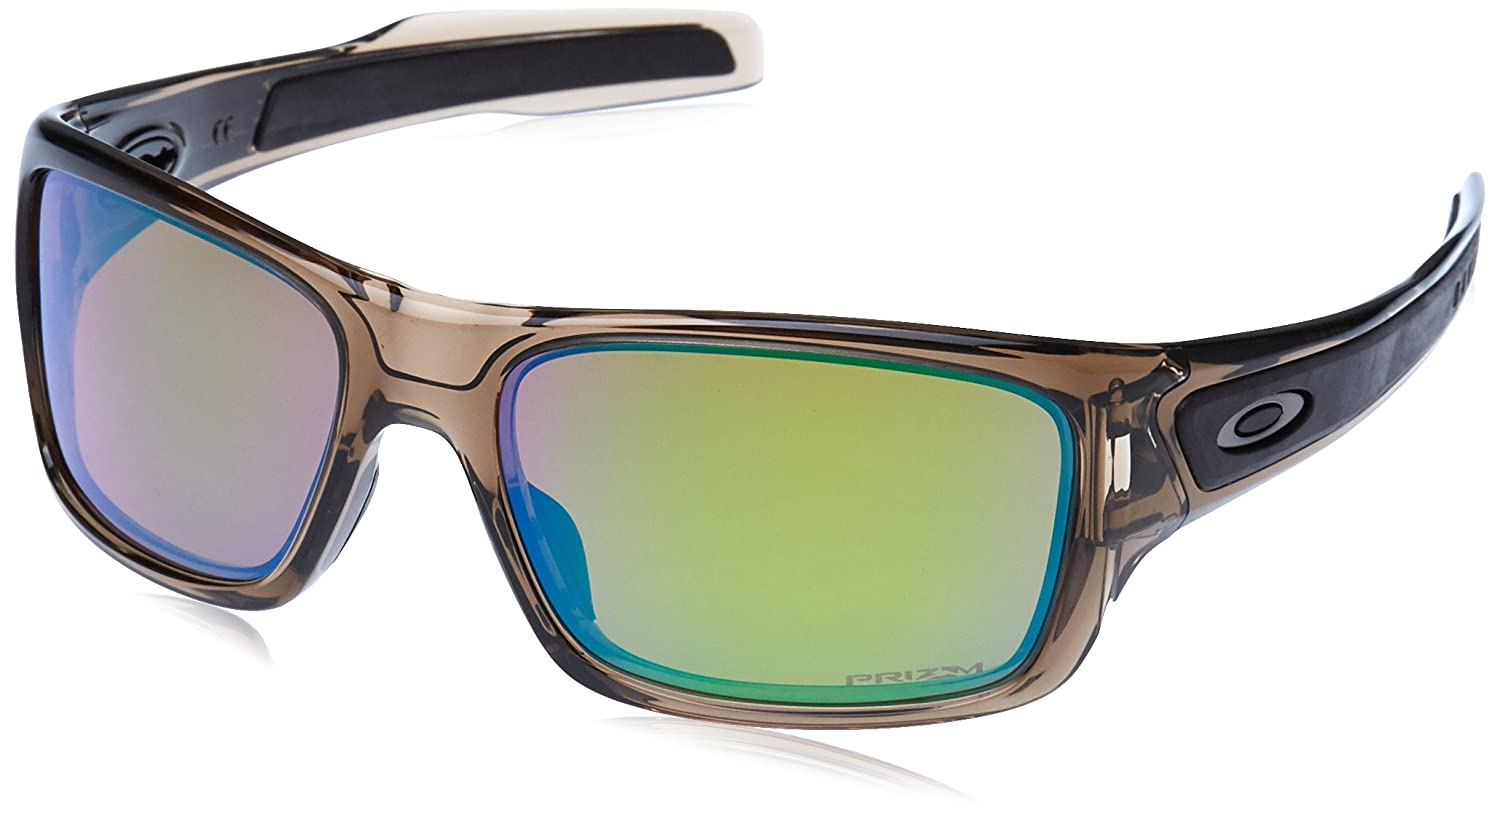 231921f36de Oakley - Turbine XS - Brown Smoke Frame-Prizm Shallow Water Polarized  Lenses  Amazon.ca  Clothing   Accessories